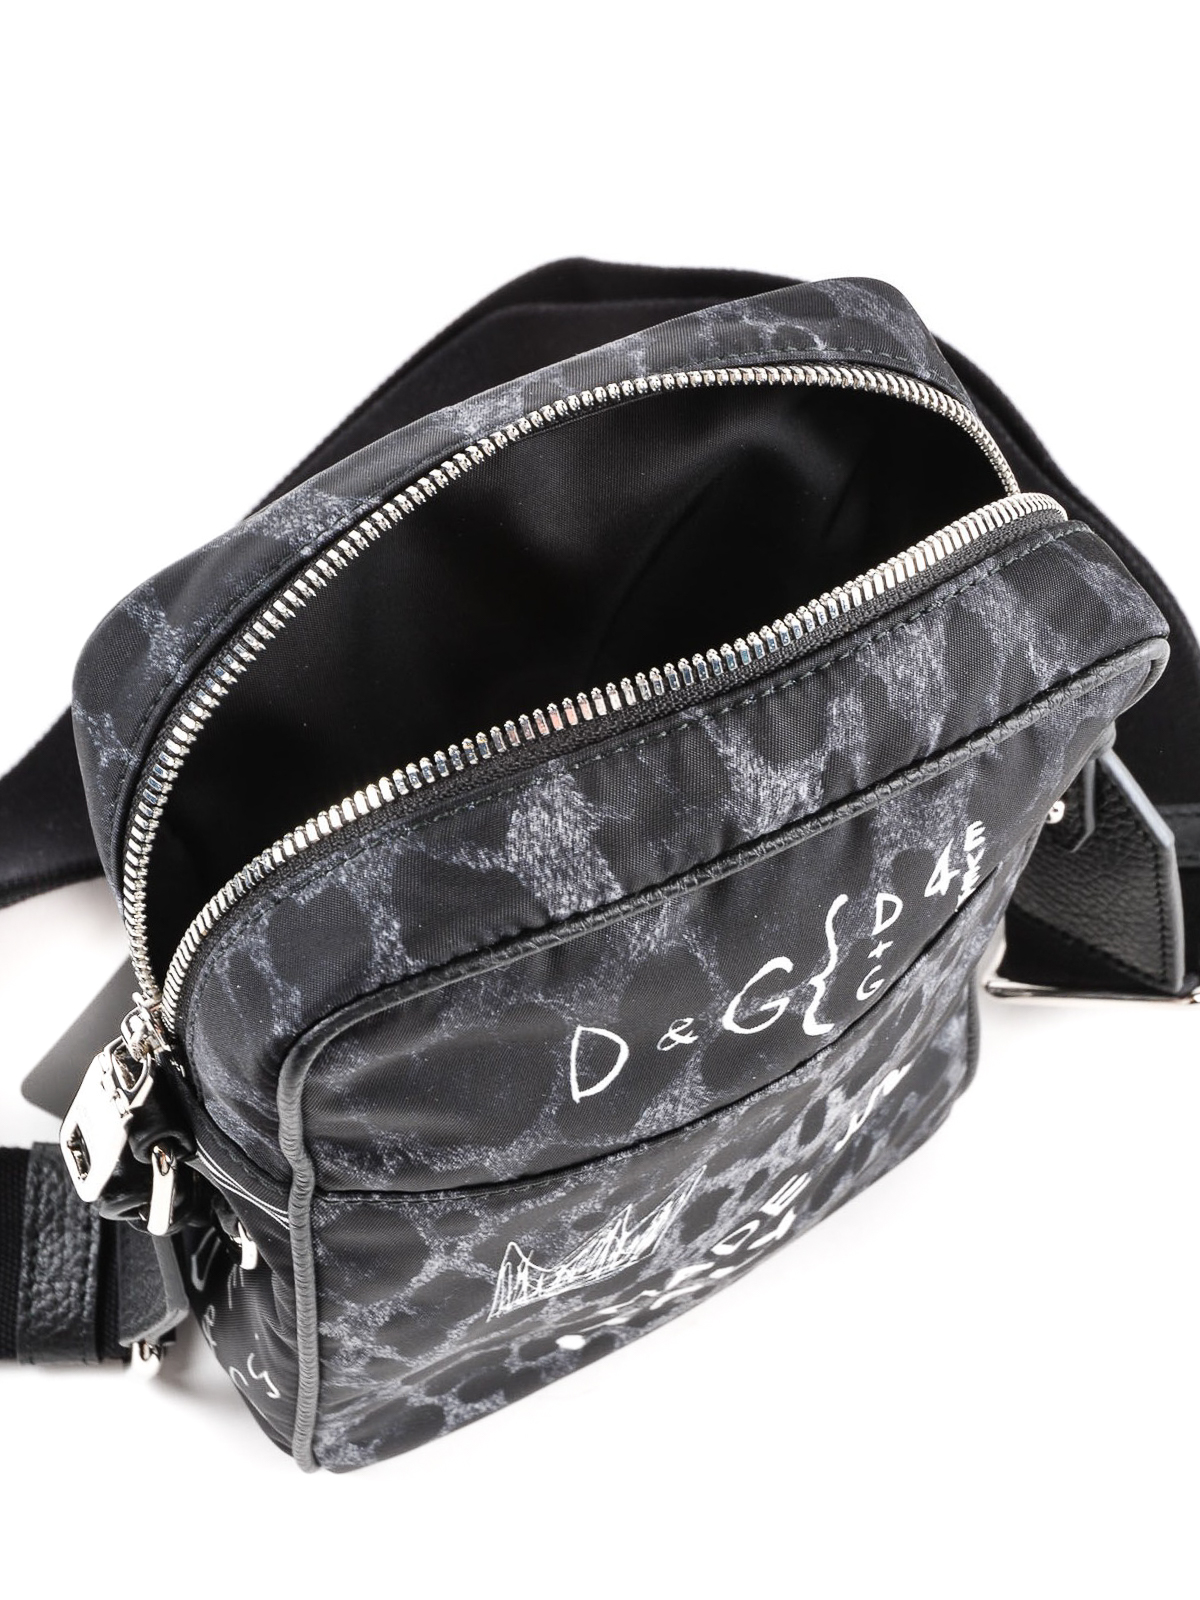 8e461dfa51 Dolce   Gabbana - Graffiti and animal print nylon bag - cross body ...